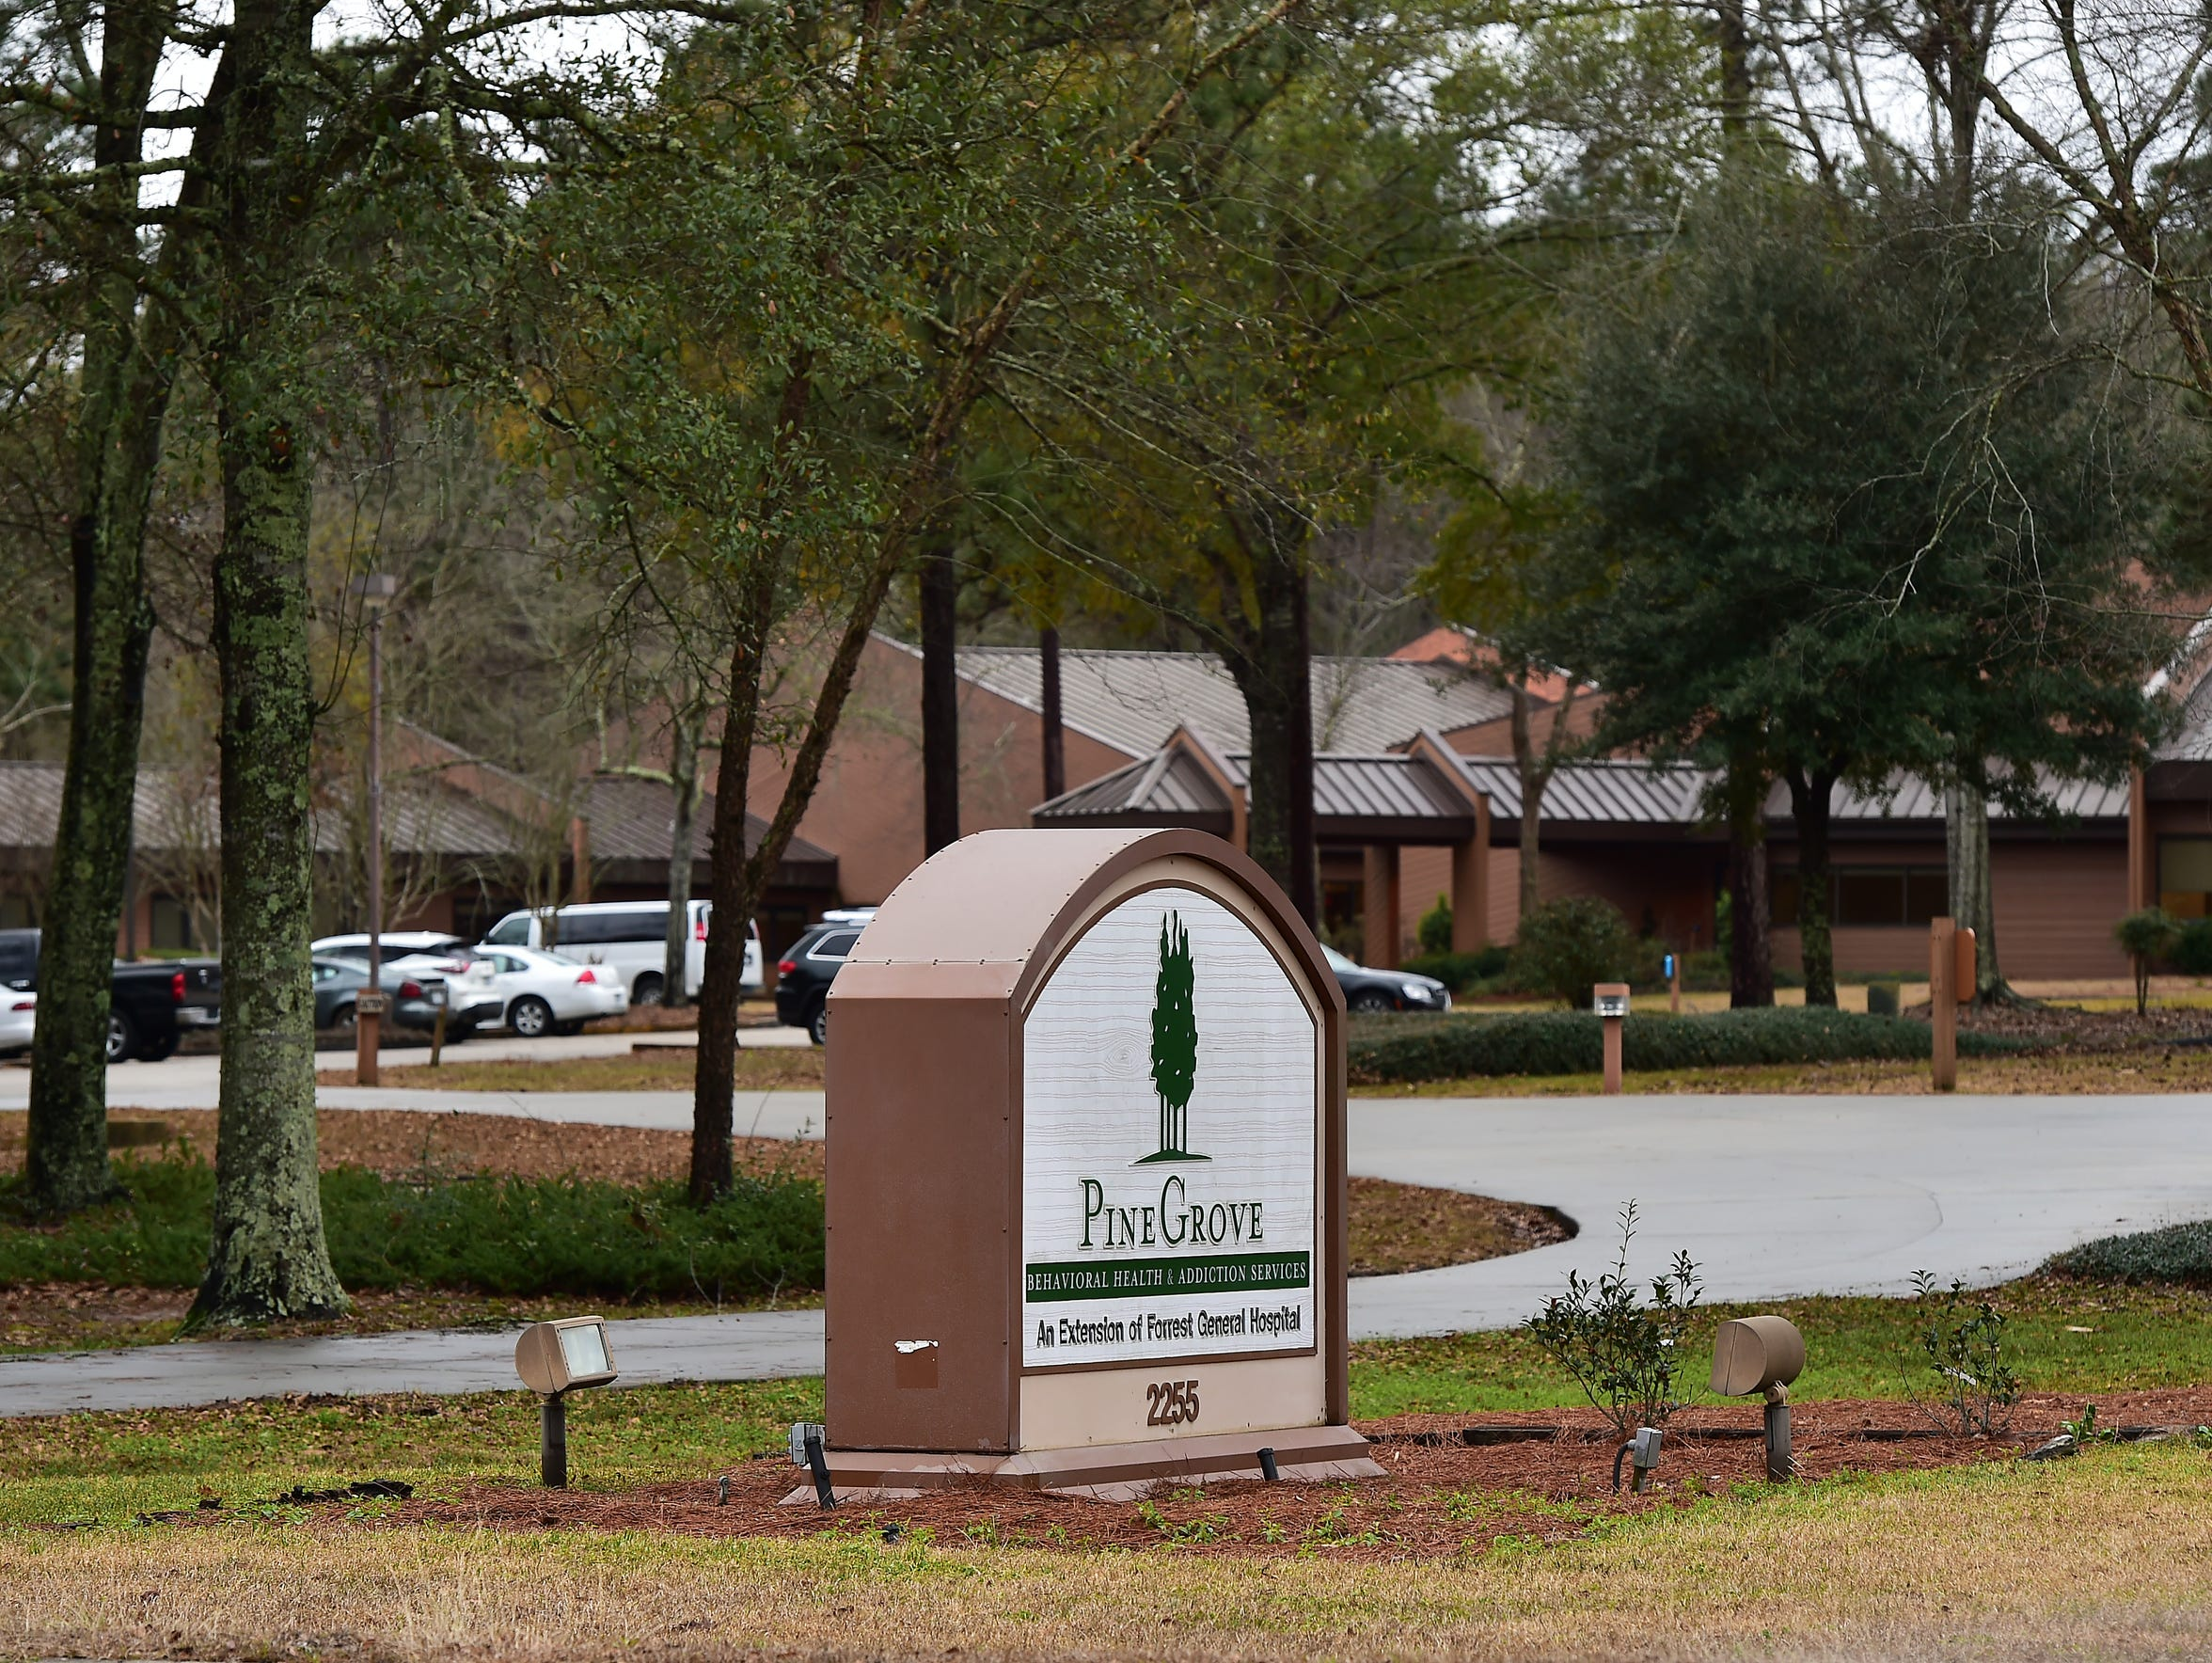 Pine Grove Behavioral Health, Hattiesburg, Miss. Monday,